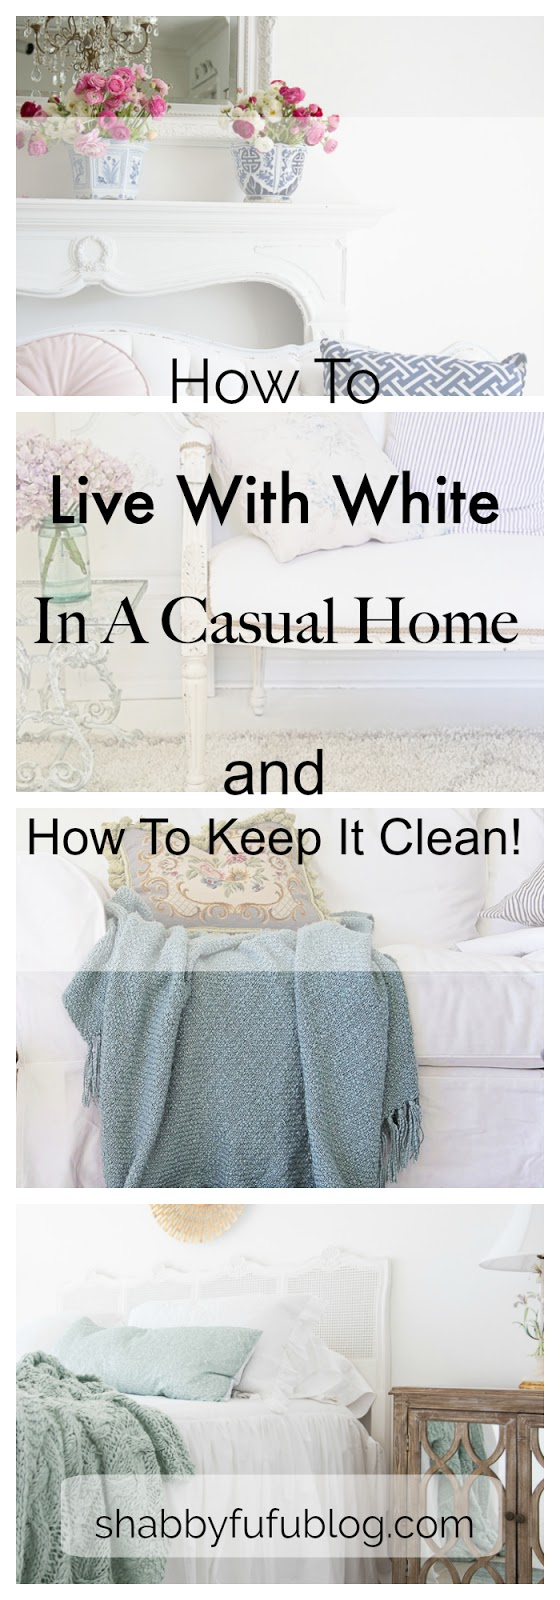 How To Live With White In A Casual Home - And Clean It